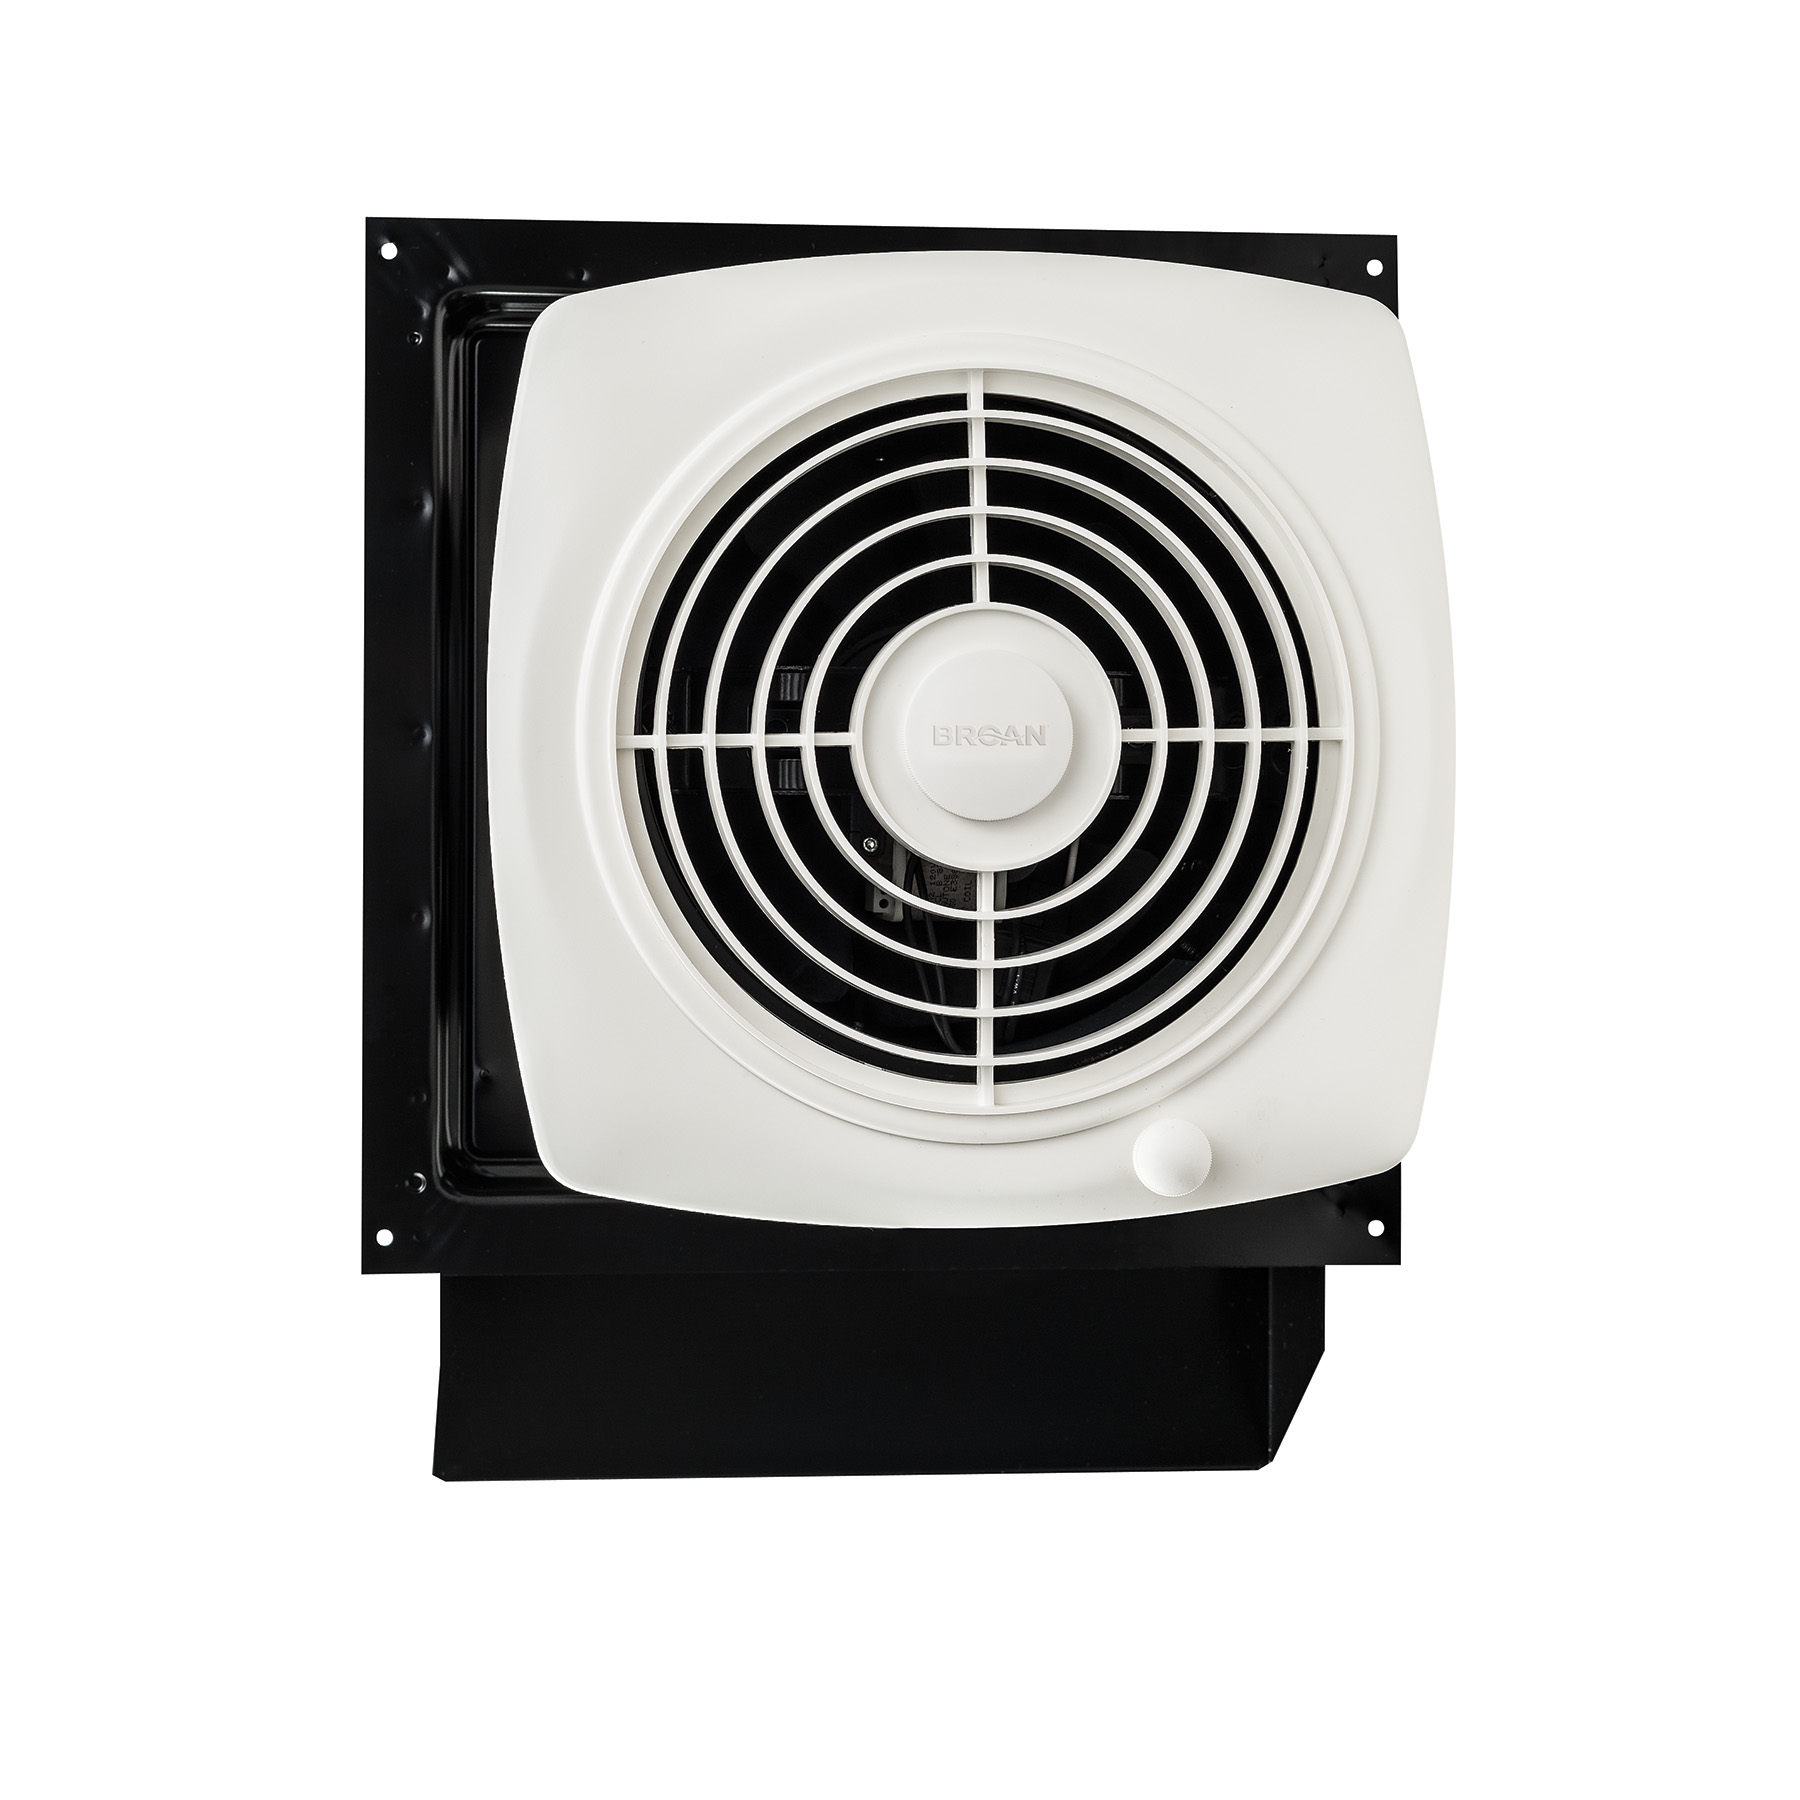 Broan-Nutone 509S 200 CFM Through-The-Wall Exhaust Fan